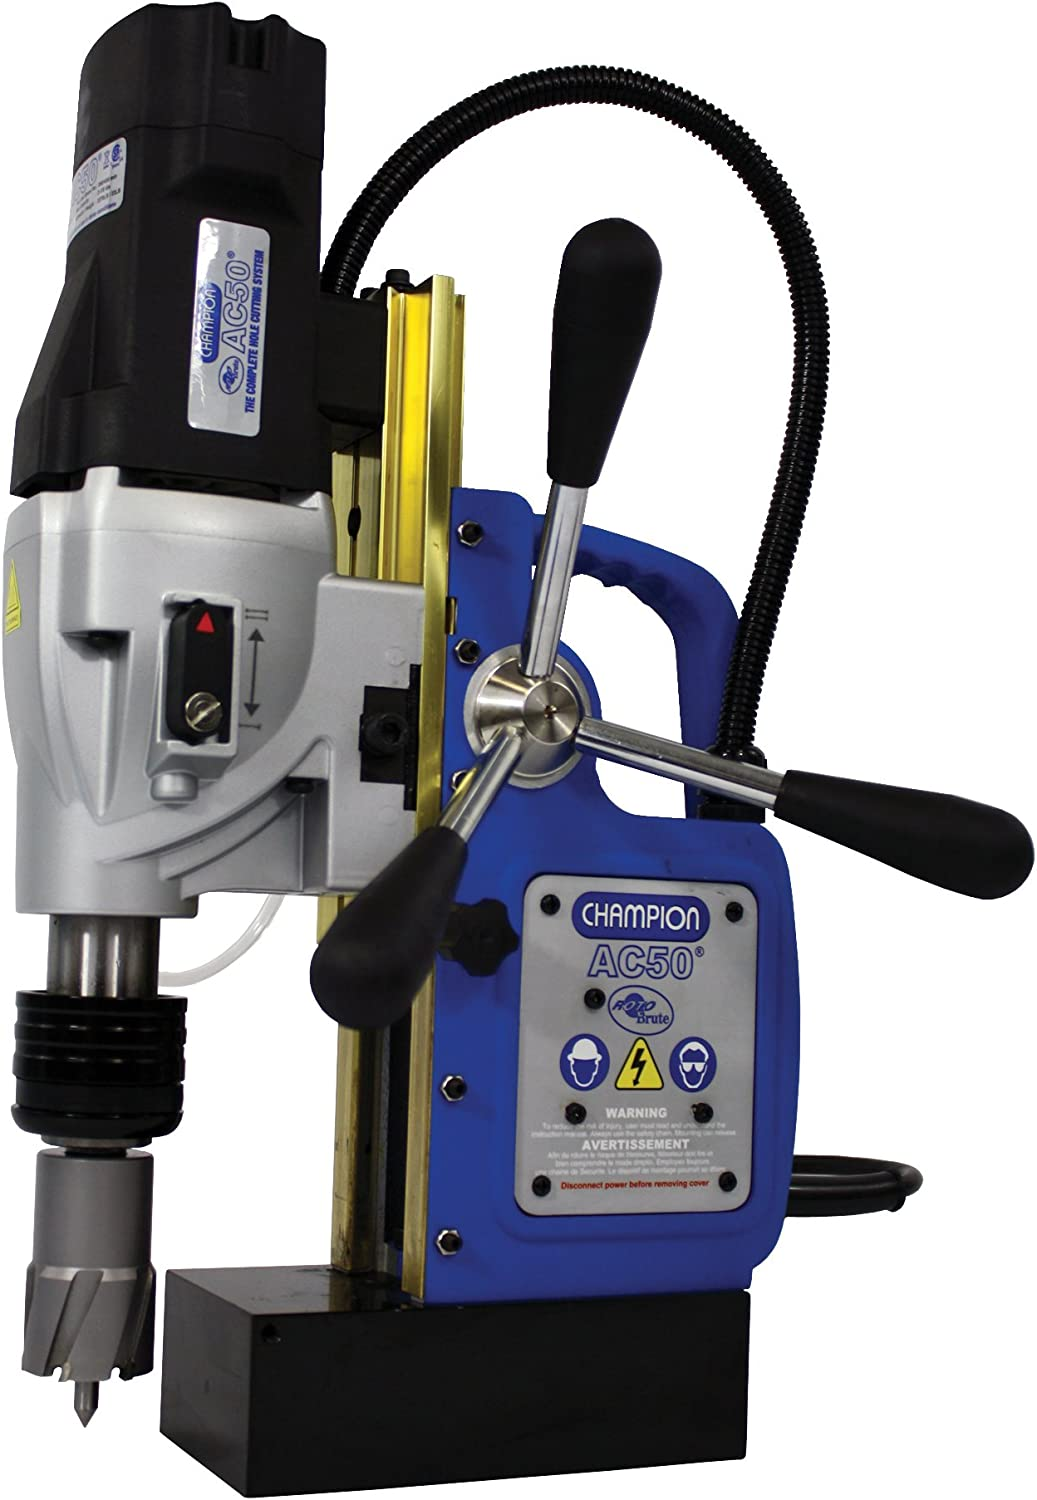 Champion Cutting Tool RotoBrute MightiBrute AC50 Portable Magnetic Drill Press Up to 2-1 8 diameter, 2 depth of cut